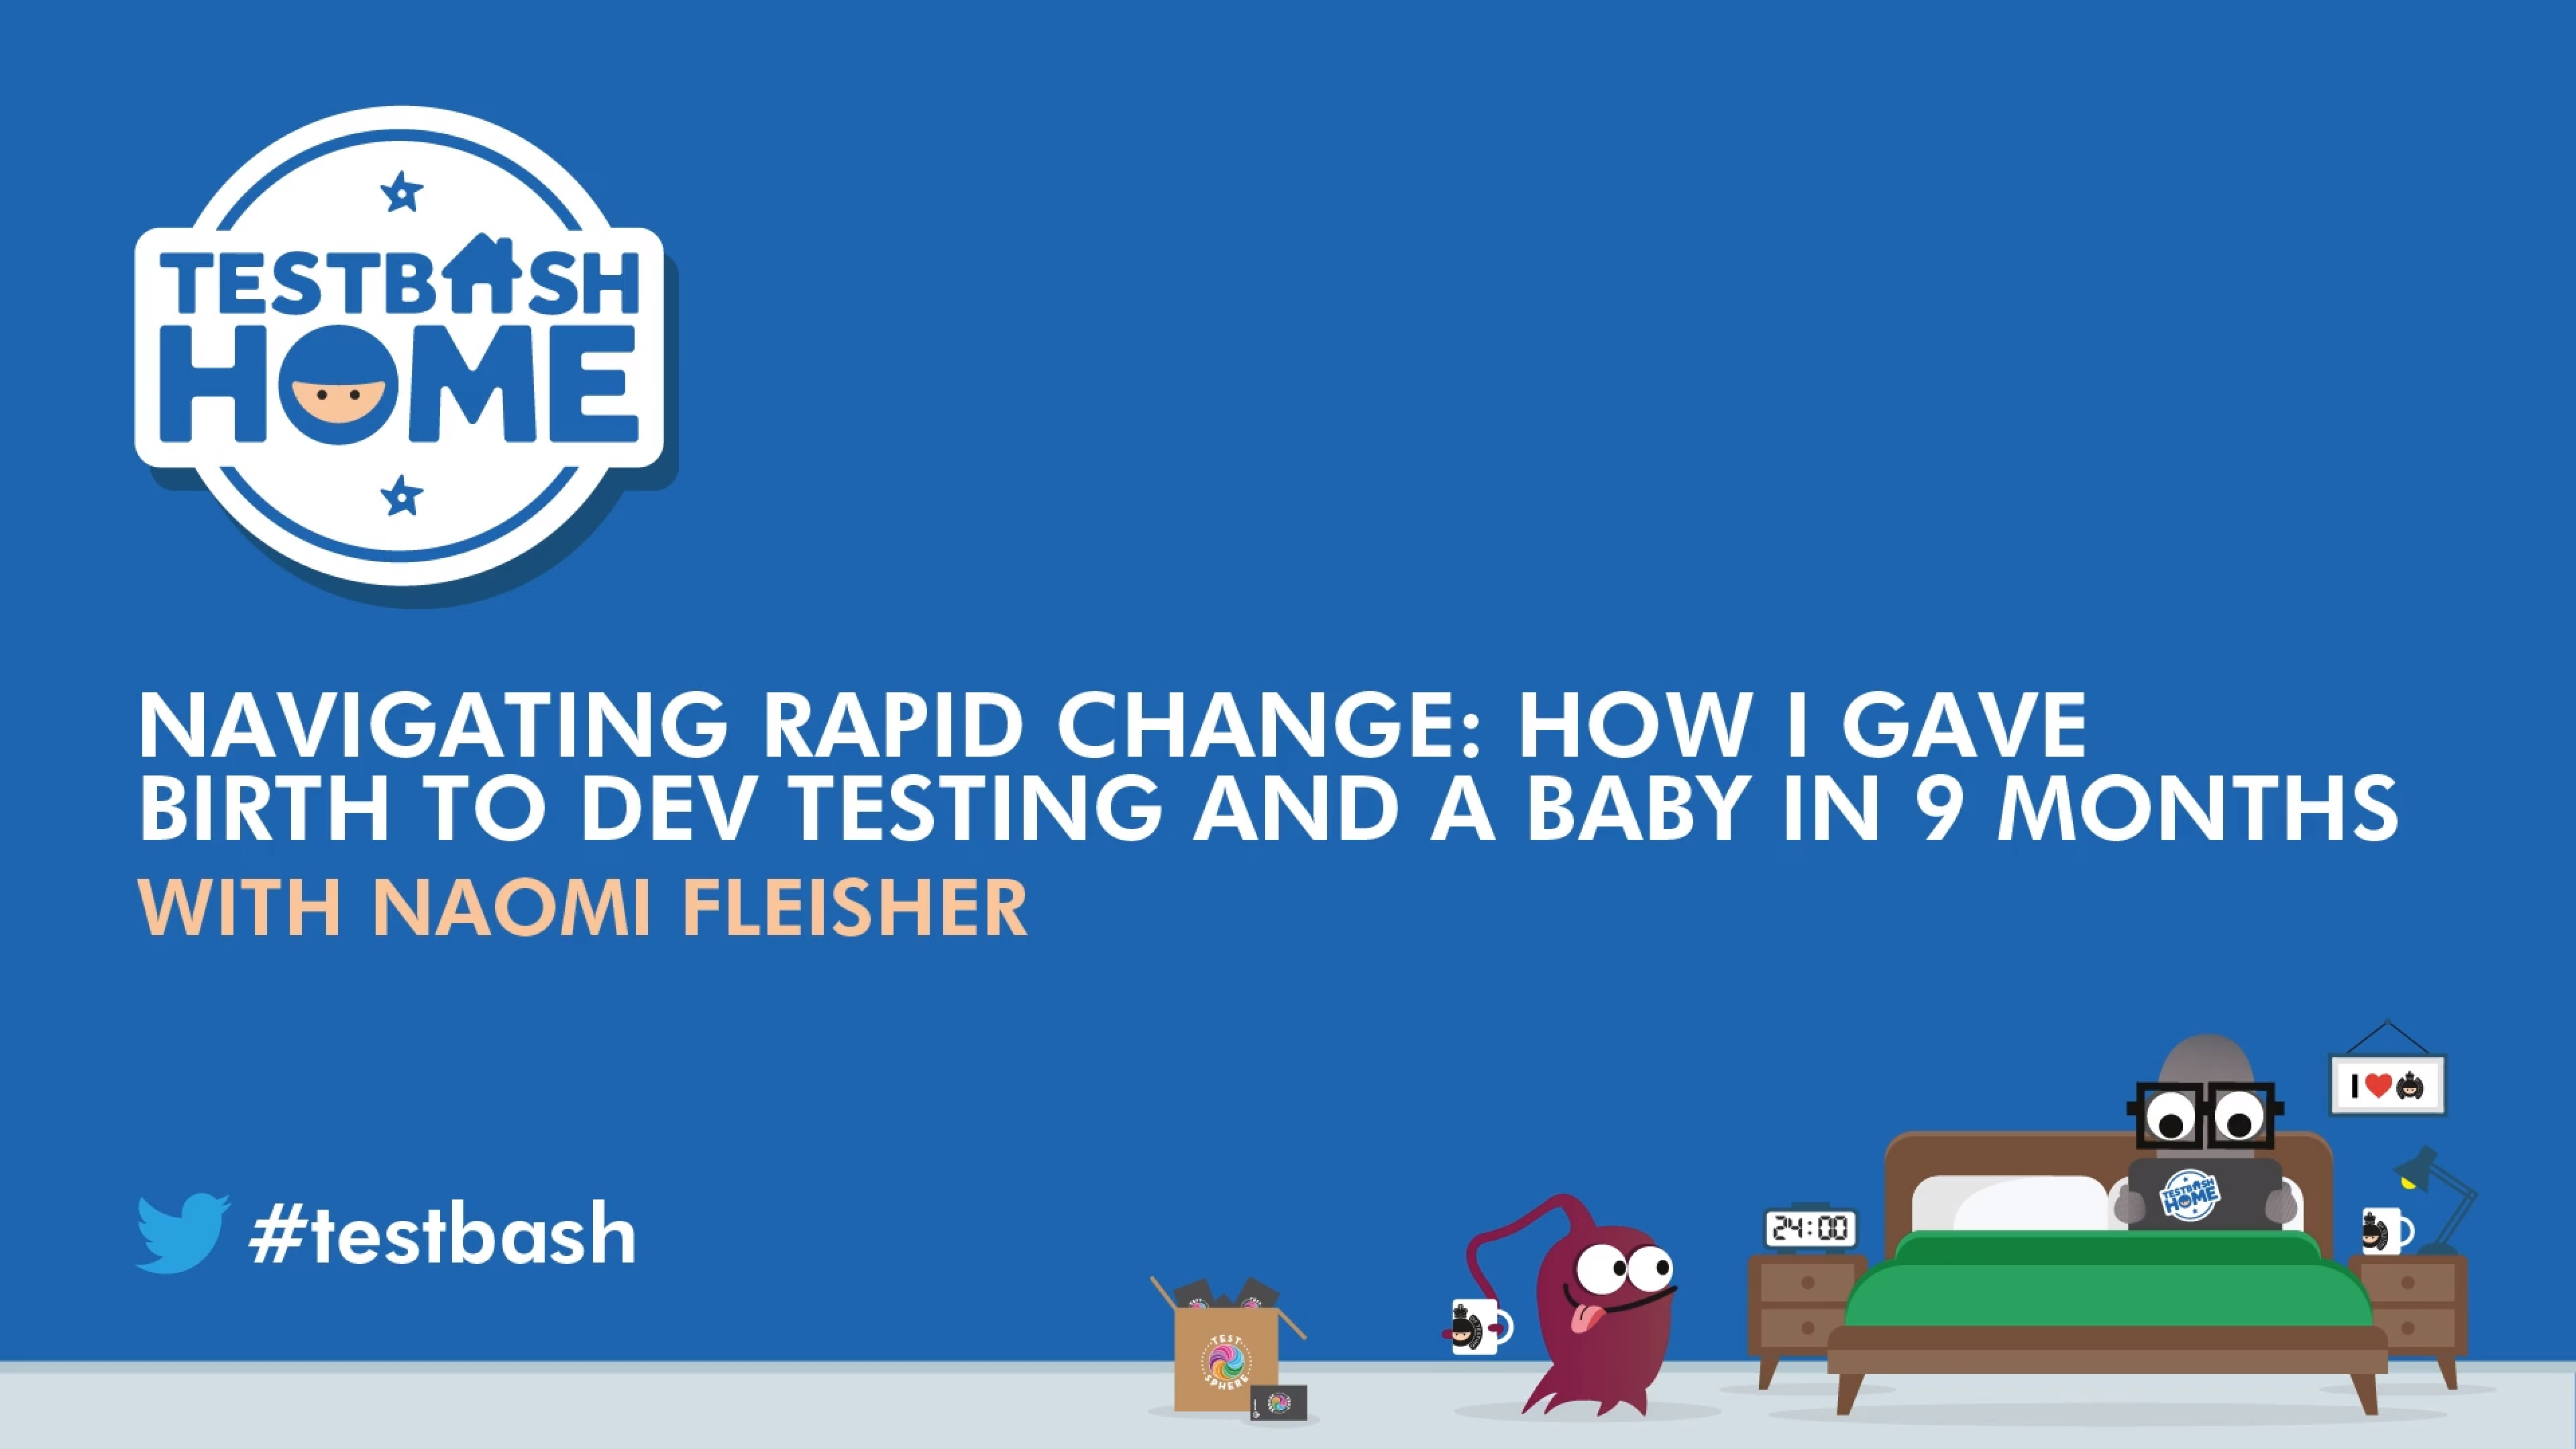 Navigating Rapid Change: How I Gave Birth to Dev Testing and a Baby in 9 Months